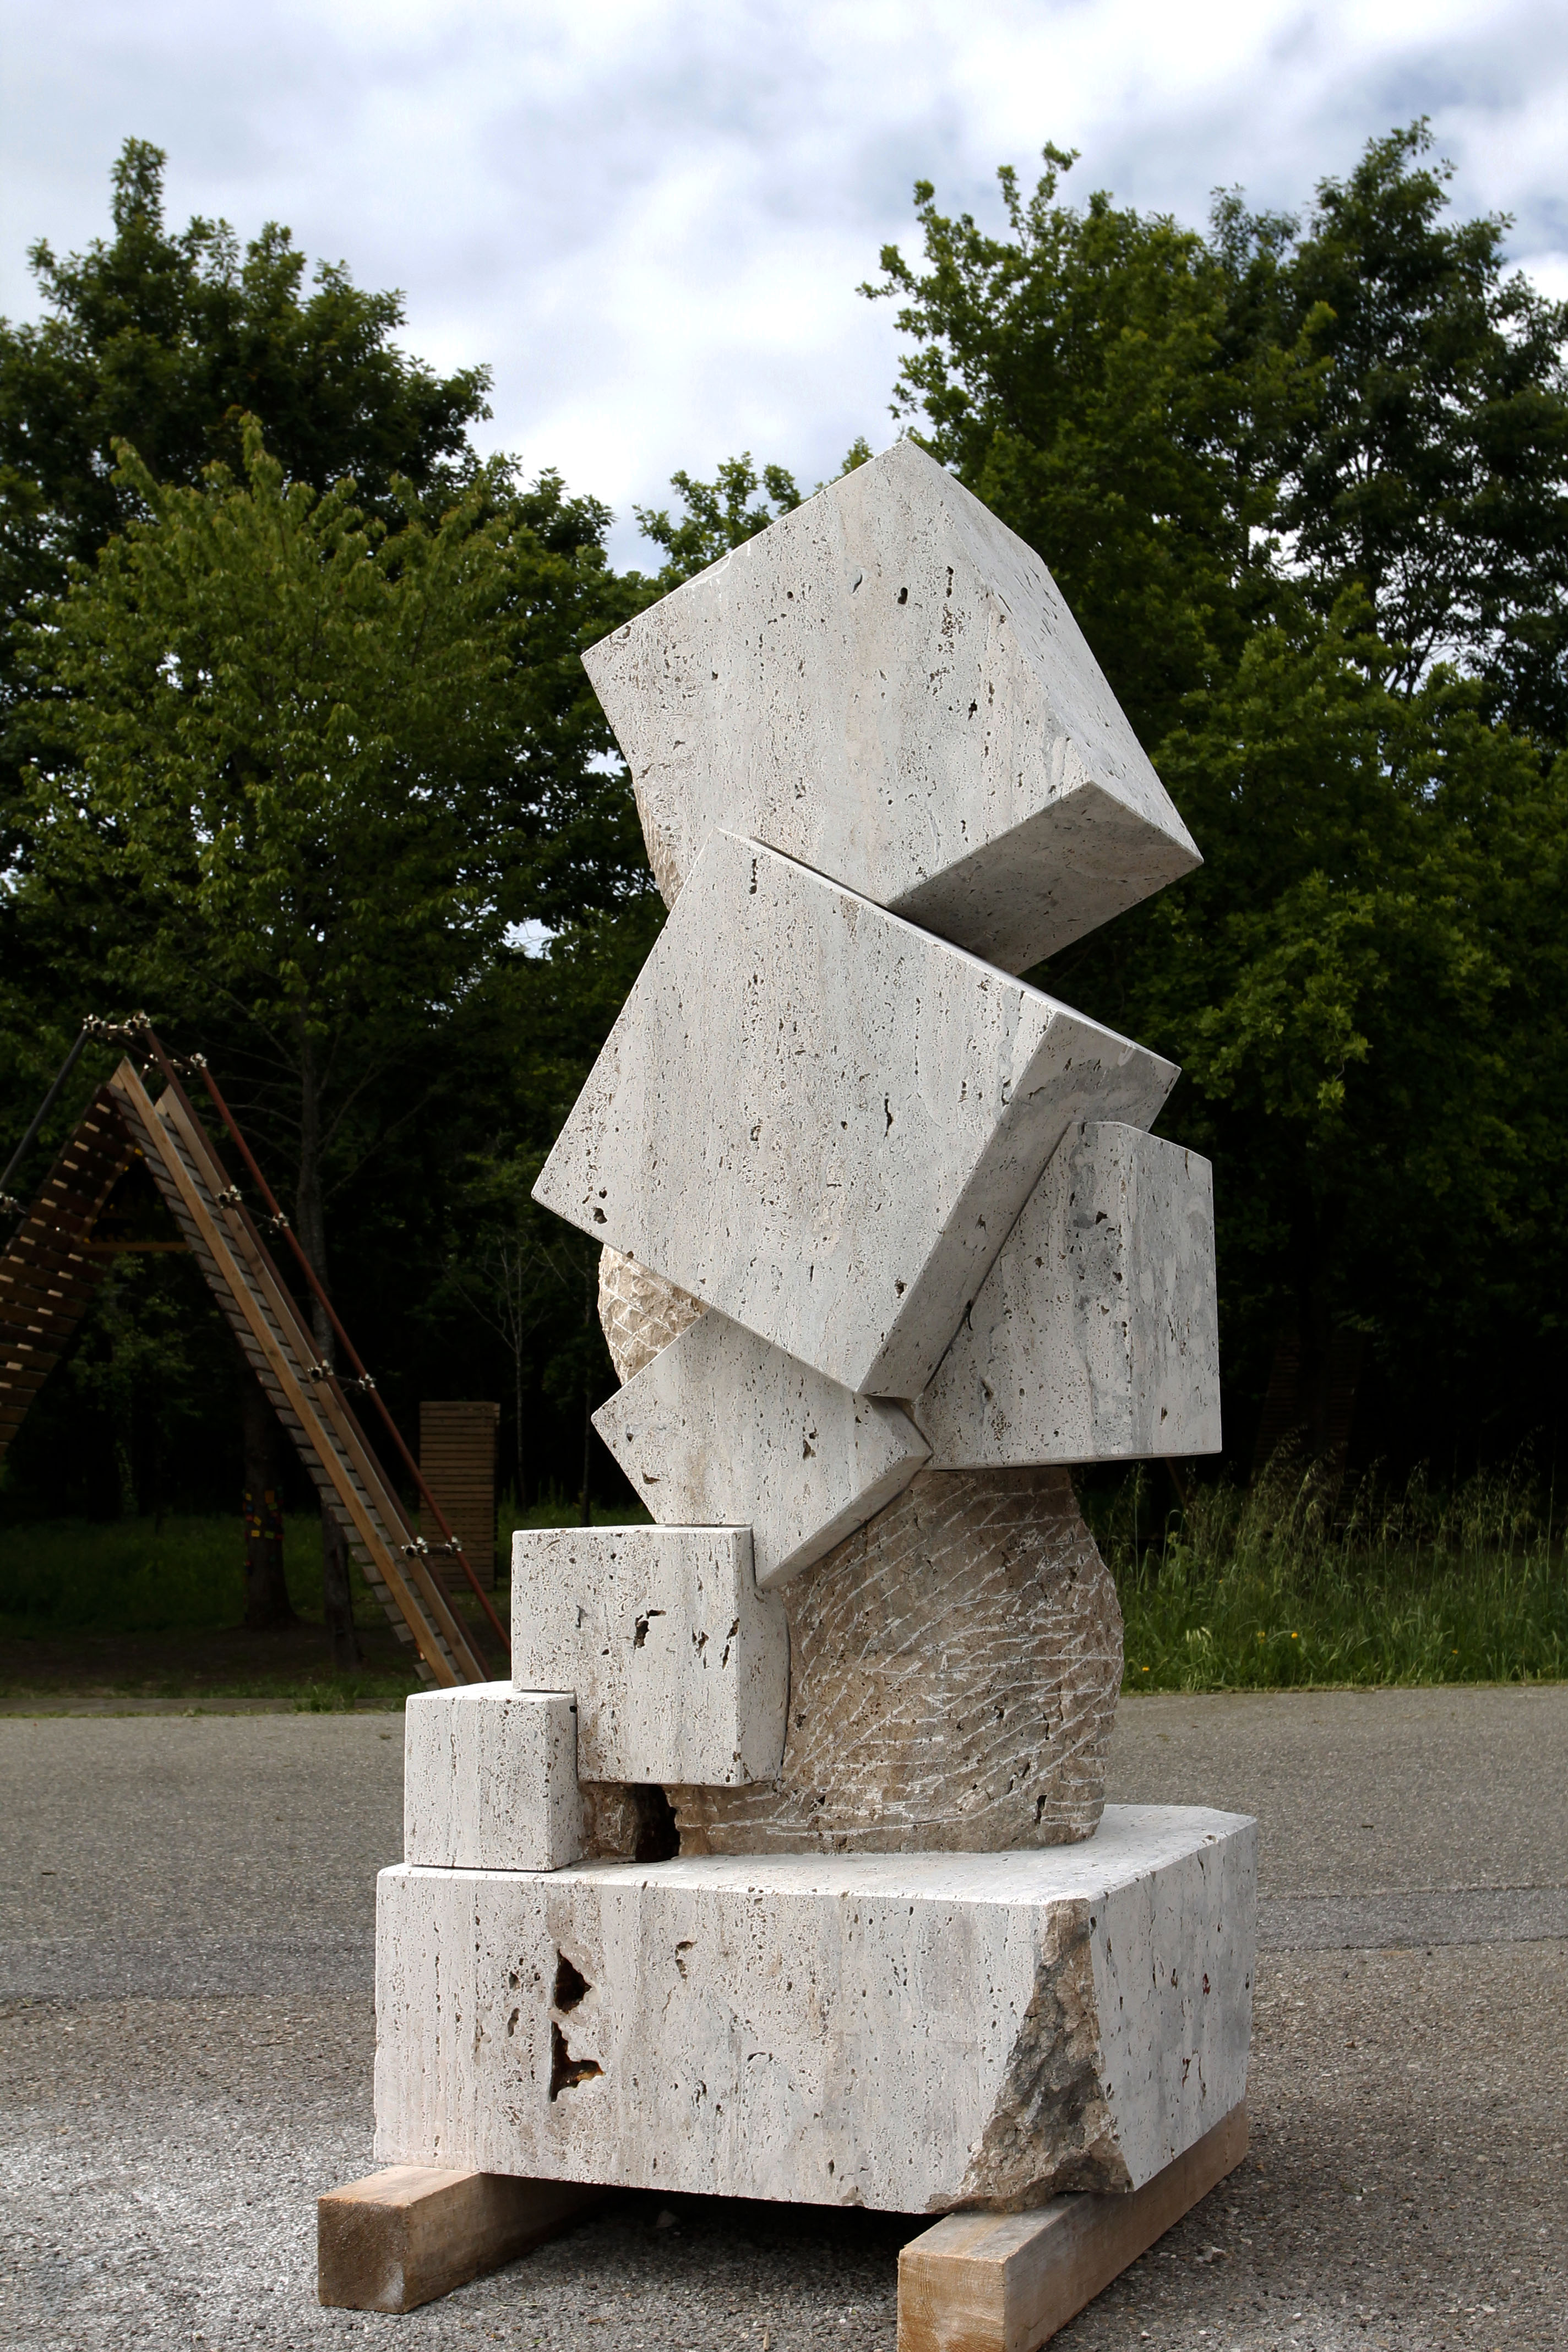 Dancing cubes and volumes